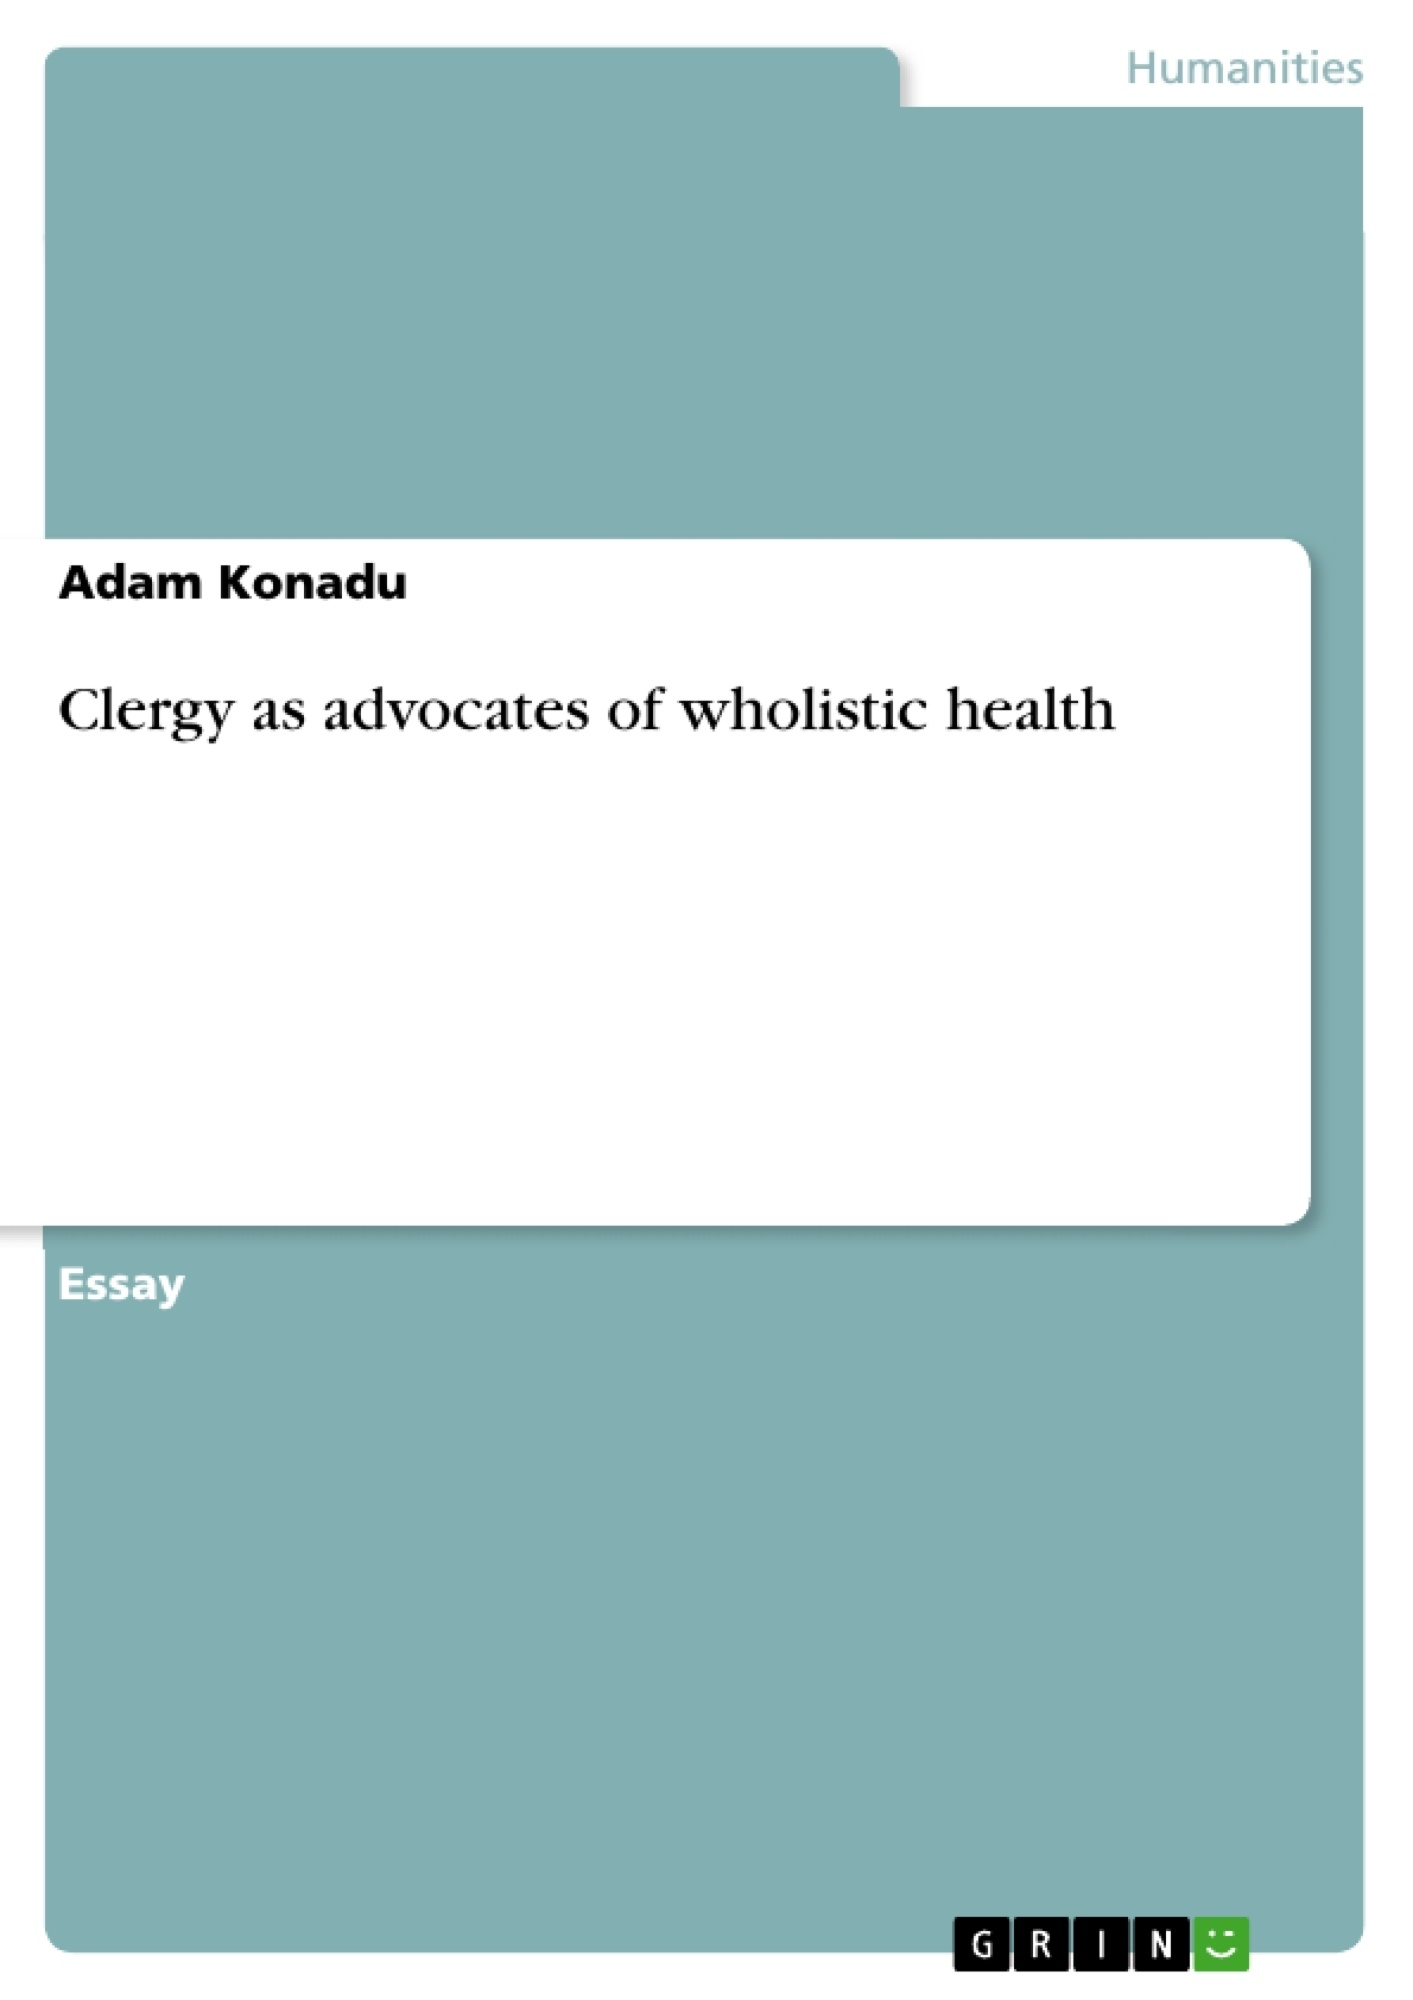 Title: Clergy as advocates of wholistic health